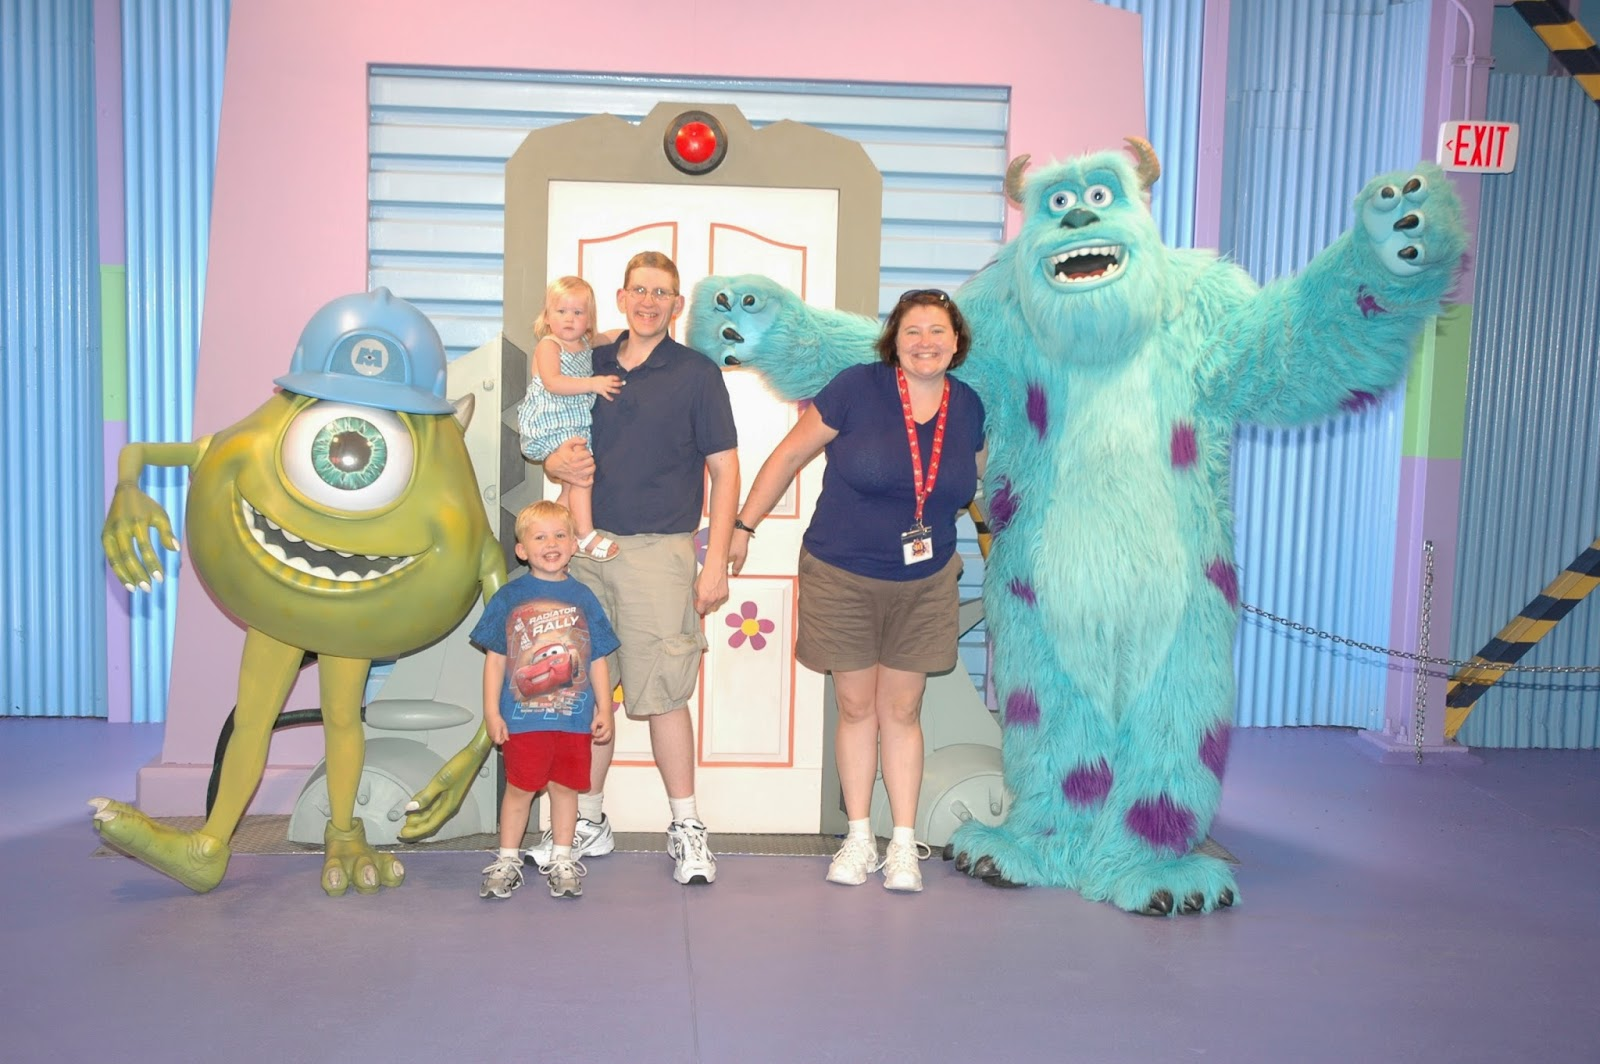 Meet Monsters Inc characters Sully and Mike at Hollywood Studios